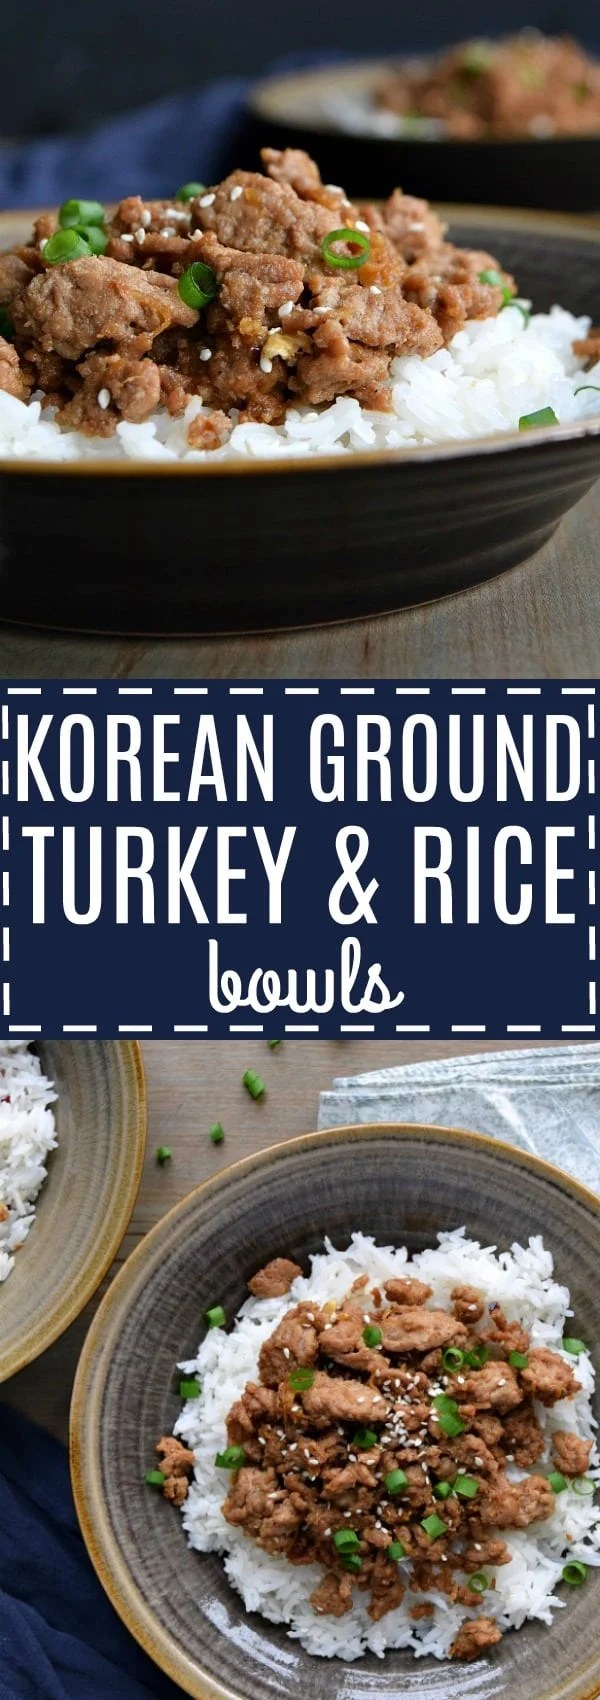 Korean Ground Turkey